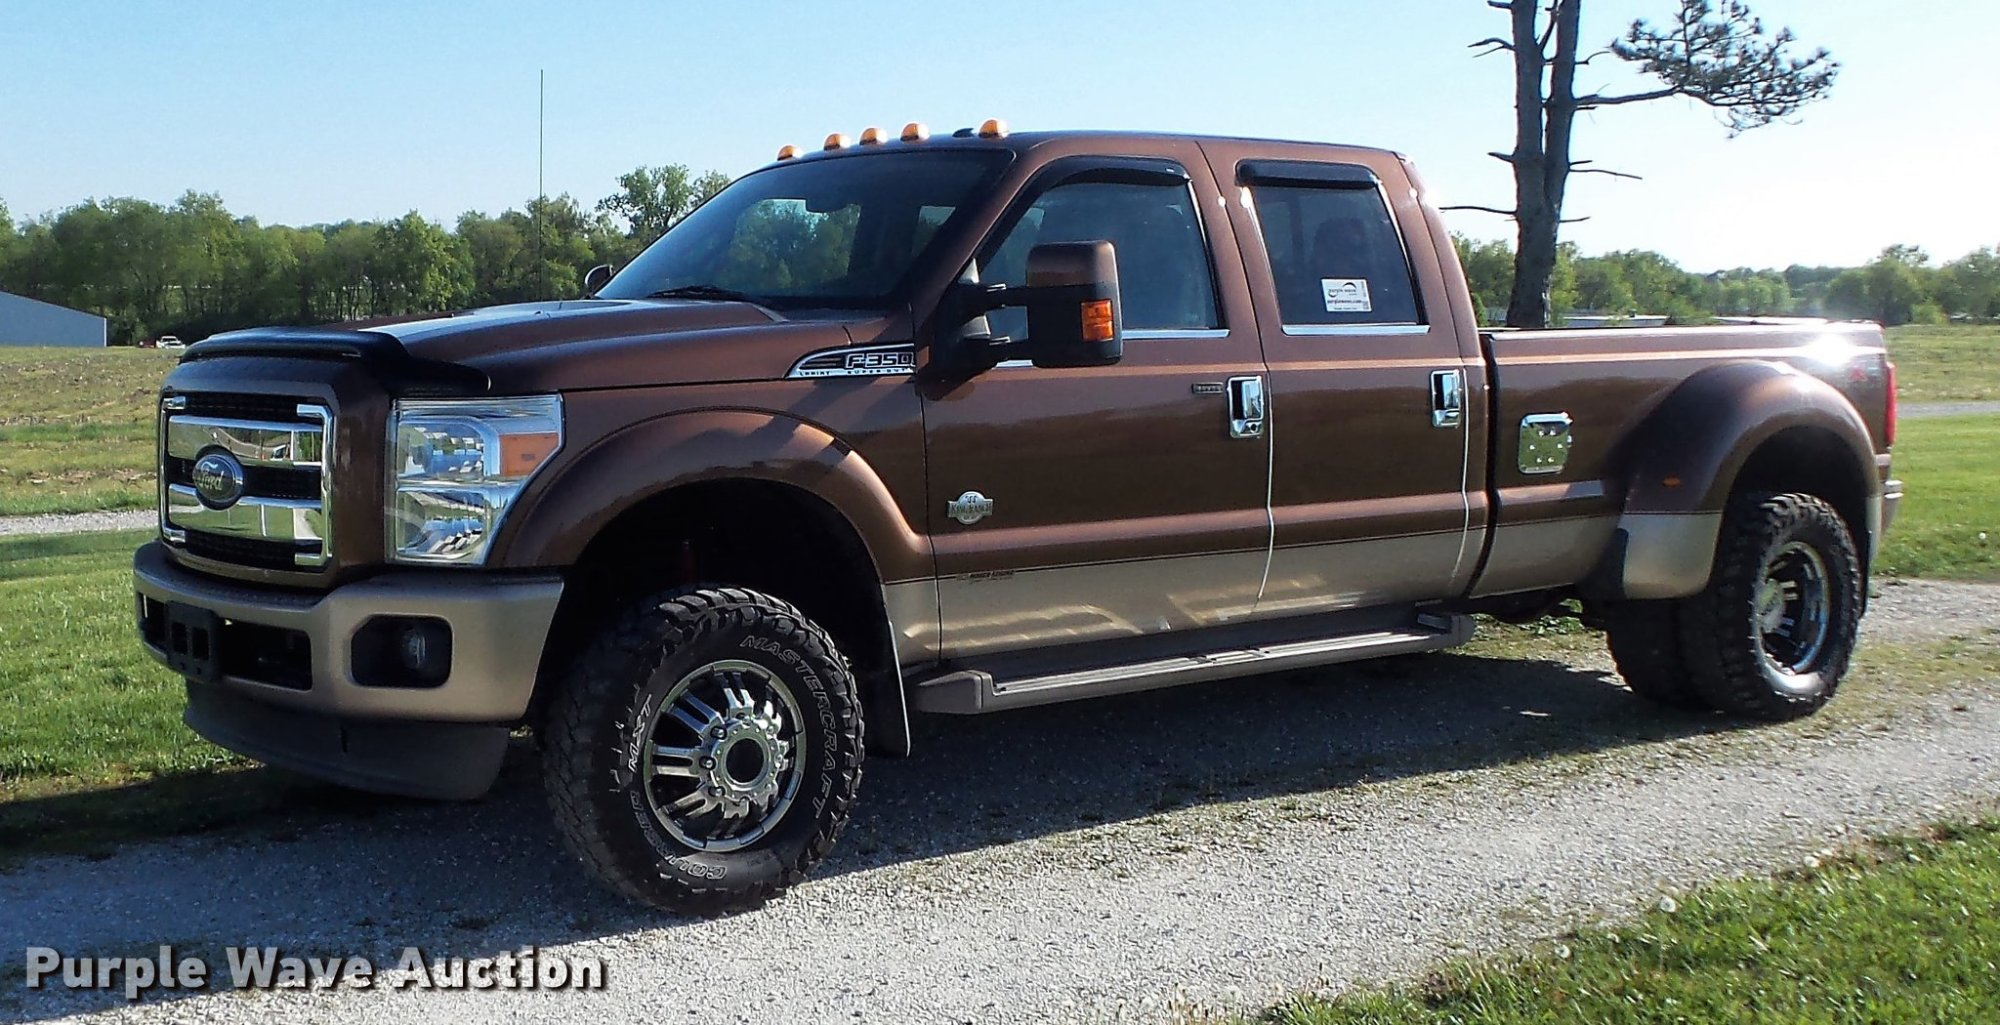 hight resolution of full size in new window dc7304 image for item dc7304 2011 ford f350 super duty lariat king ranch crew cab pickup truck